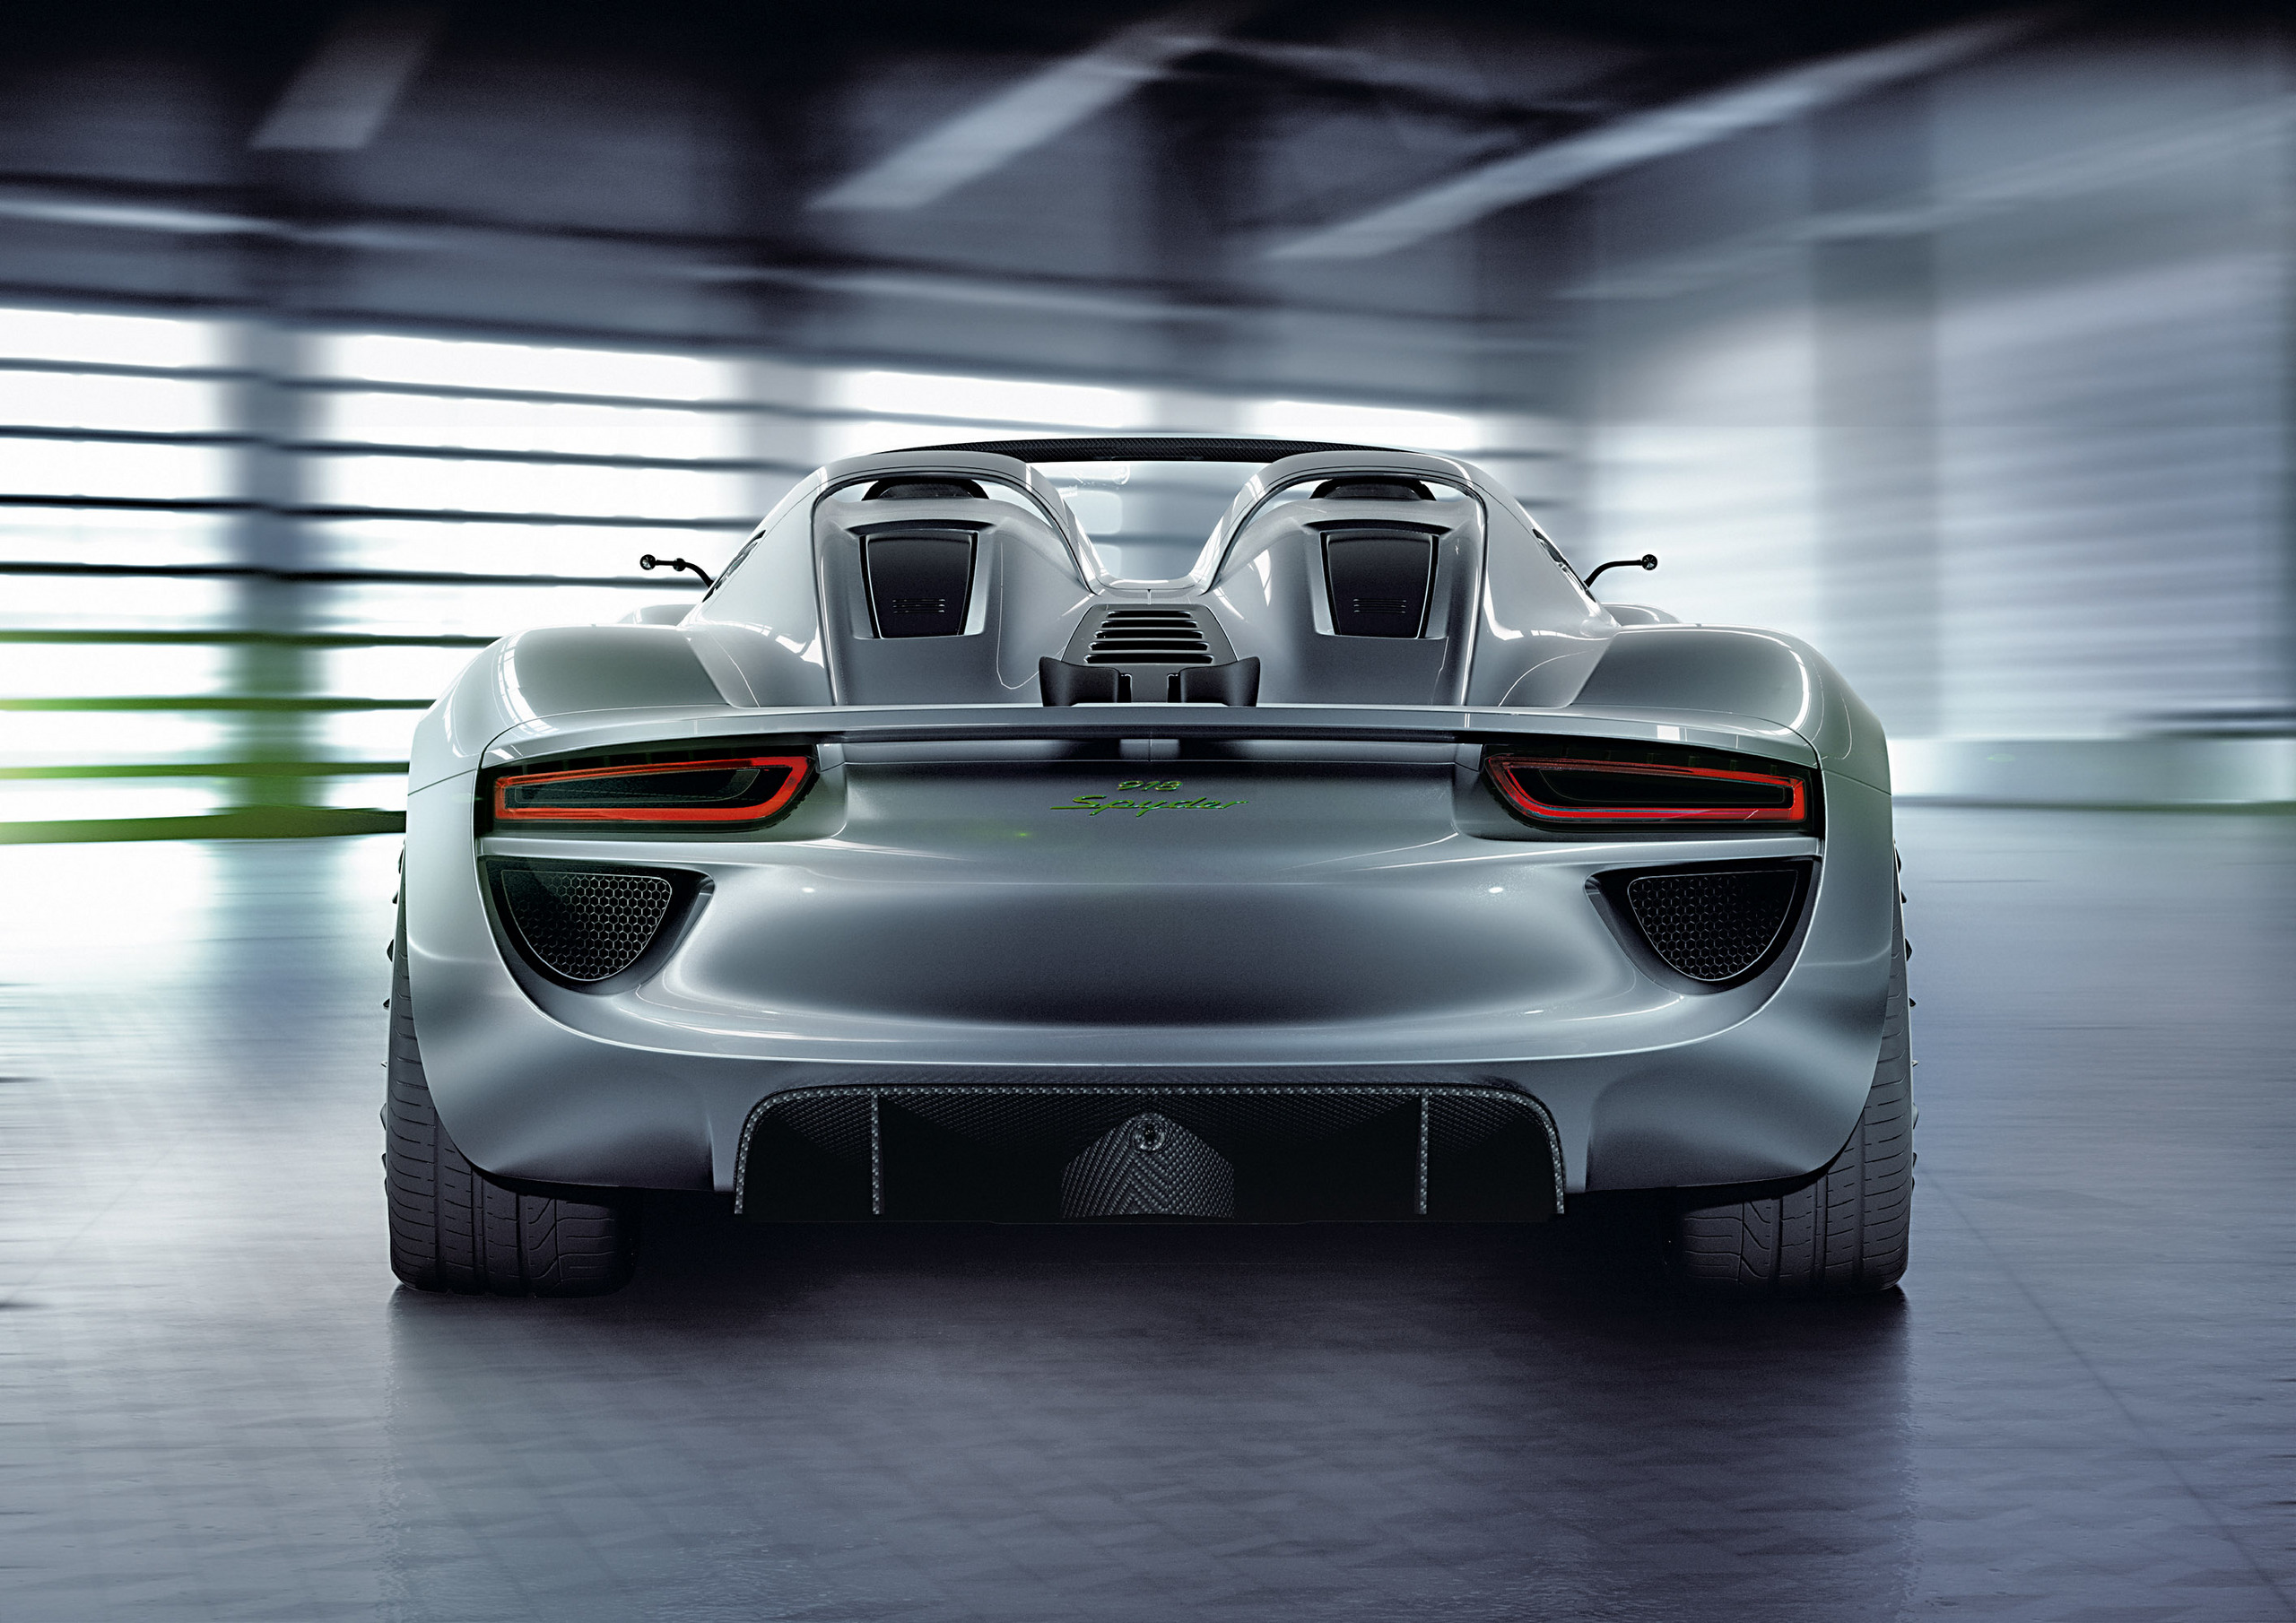 exotic cars images porsche 918 spyder hd wallpaper and background